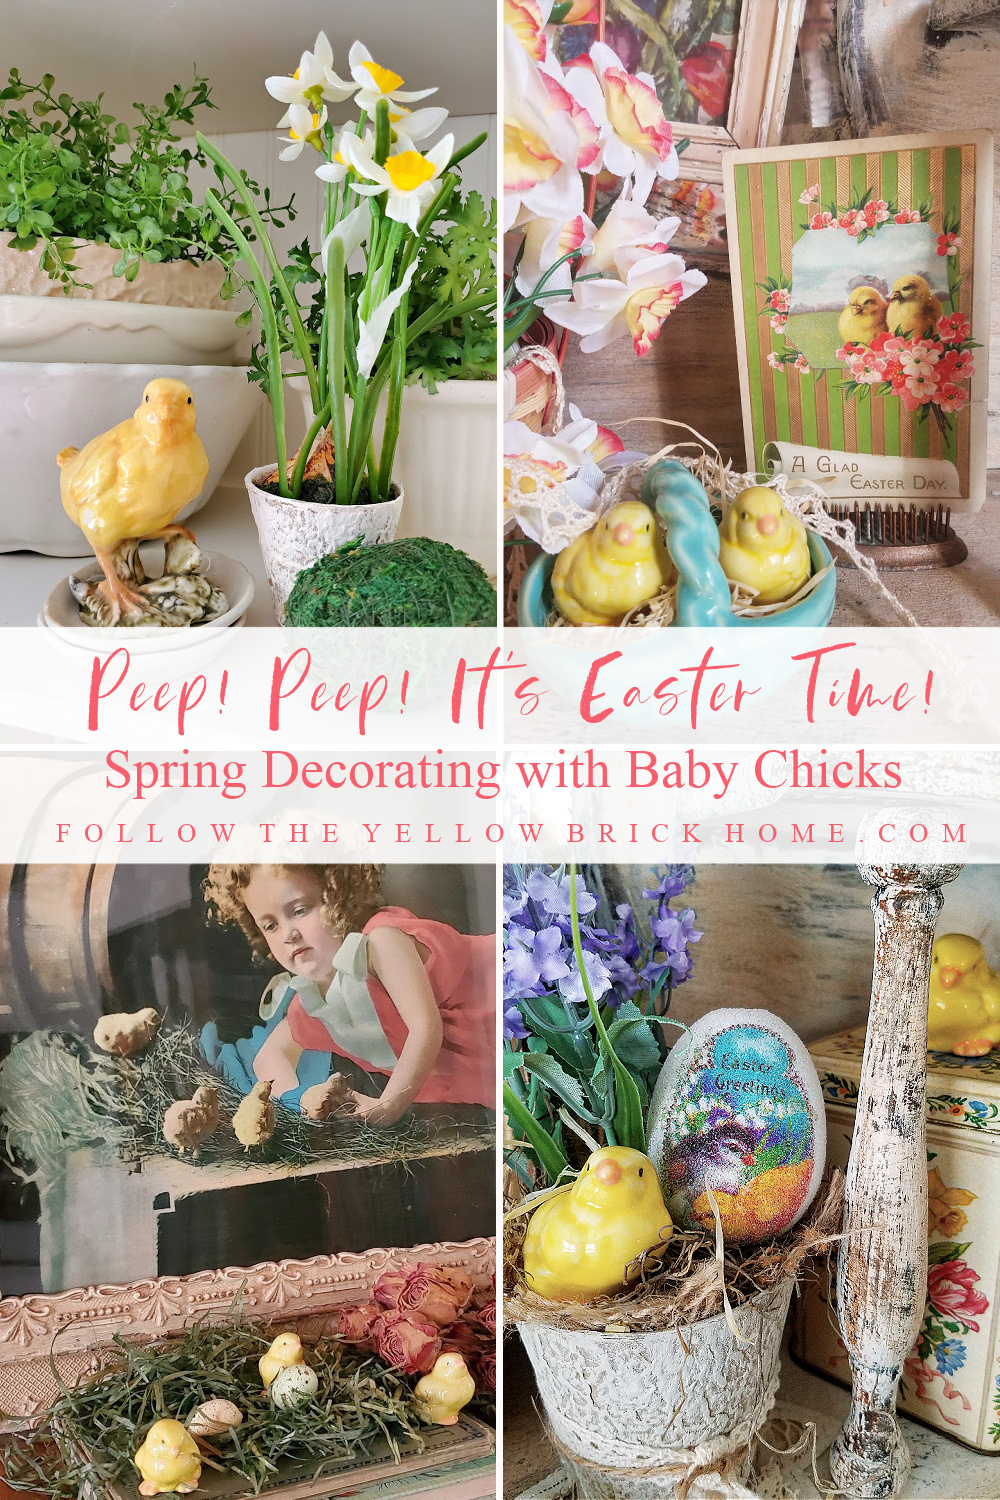 Easter Decorating Ideas Baby Chicks baby Easter Chicks in Easter decor spring decorating